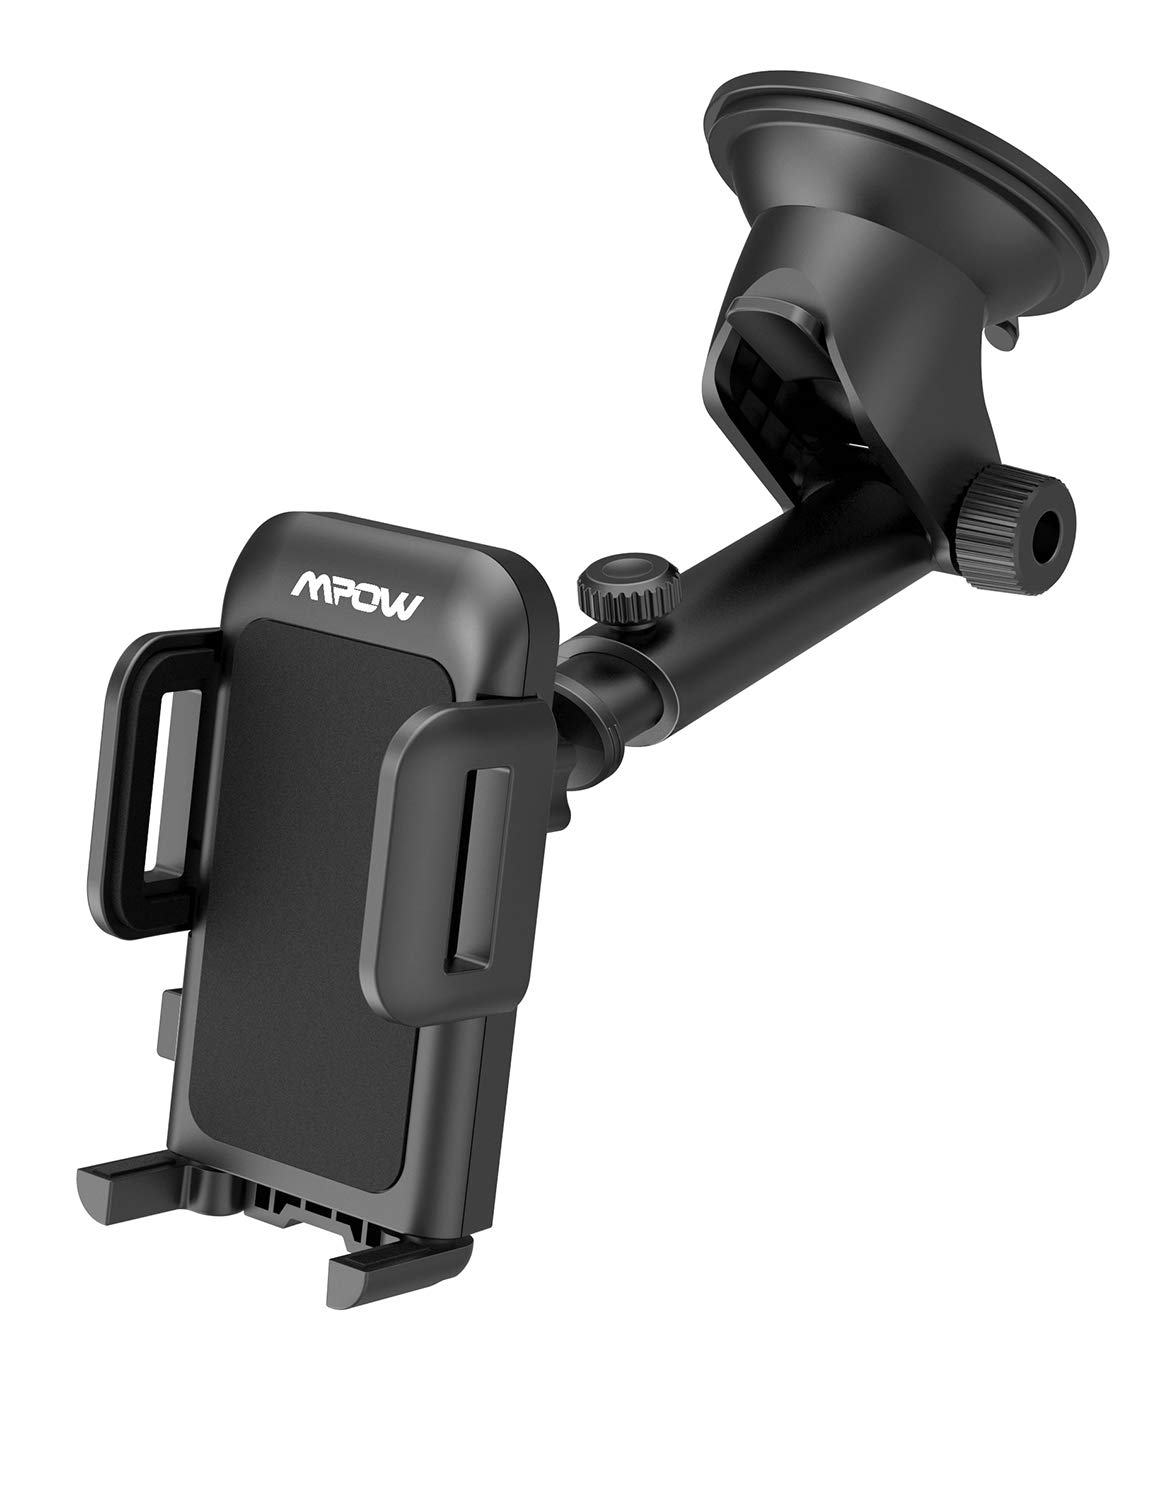 Mpow Upgrade Dashboard Car Phone Mount, Adjustable Windshield Holder Cradle with Strong Sticky Gel Pad Compatible iPhone XS Max, XS, XR, X, 8, 8Plus, 7, 7Plus, 6S, Galaxy S8, S9, S10, Google, Black by Mpow